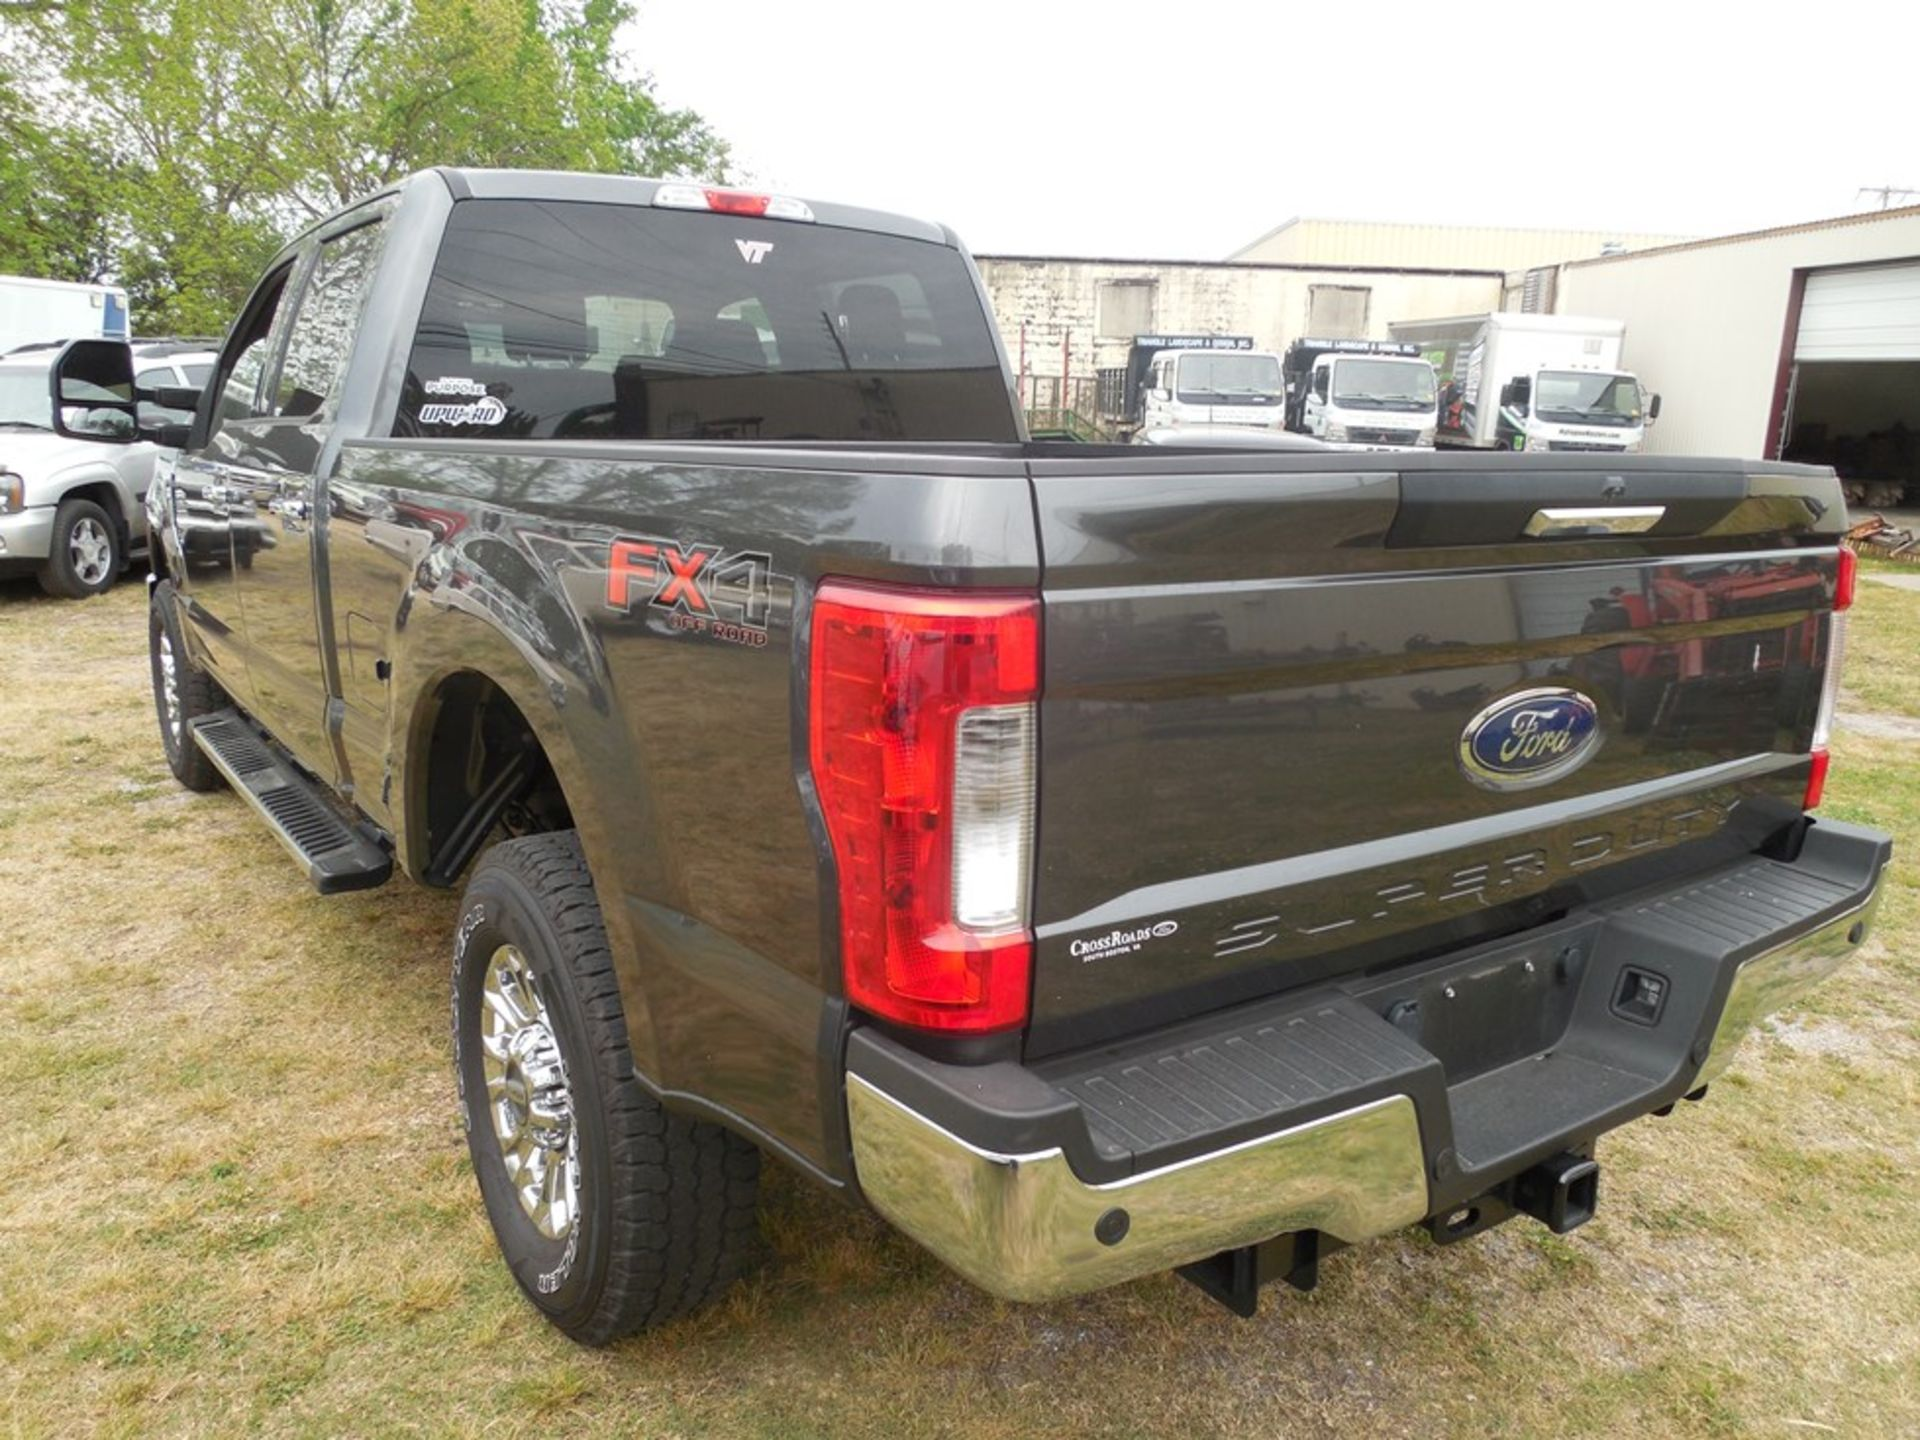 2019 Ford F250 XLT 4wd, 4dr, gas, vin# 1FT7W2B61KEC95867 19,999 miles - Image 5 of 7